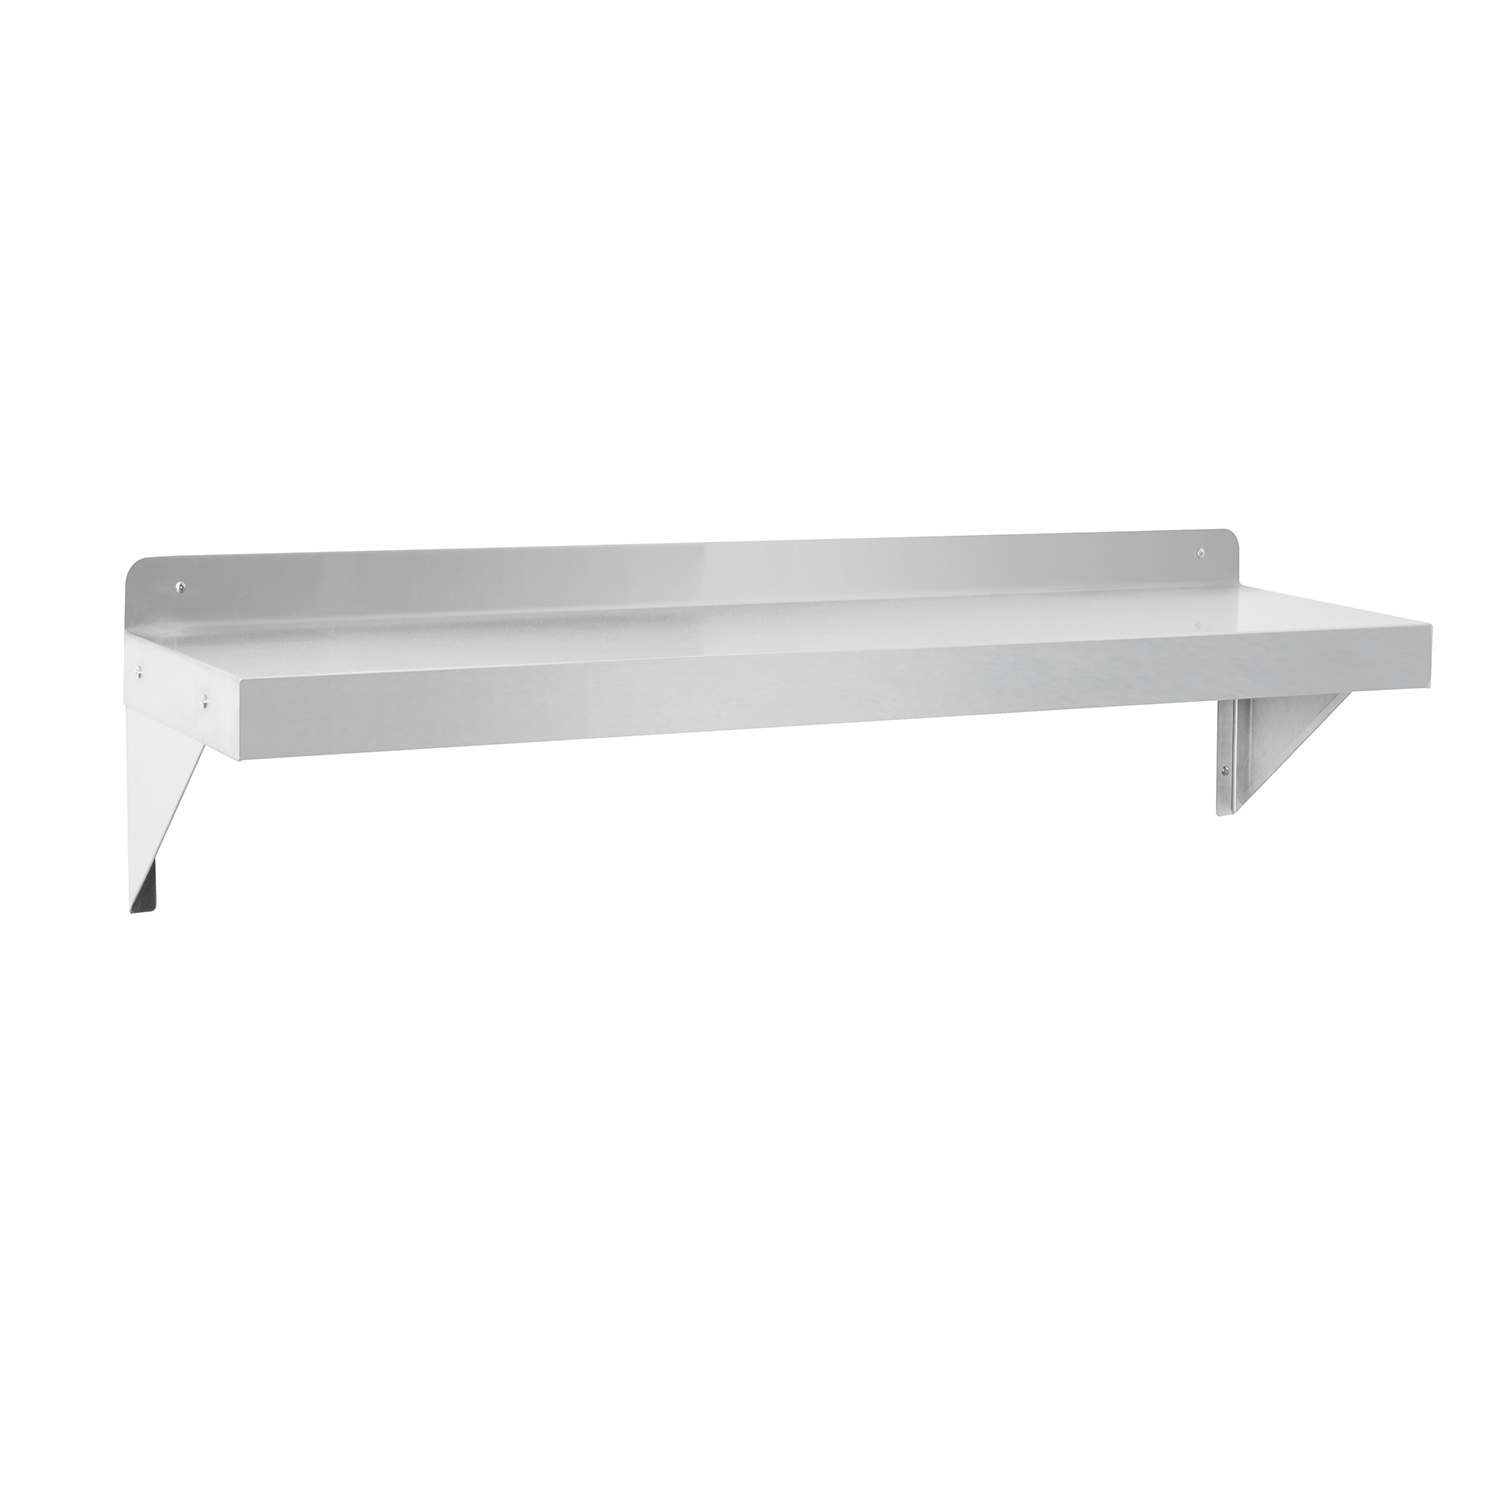 China Stainless Steel Kitchen Wall Mount Shelf Commercial With Backsplash China Stainless Steel Kitchen Shelves Wall And Stainless Steel Wall Shelves Restaurant Price